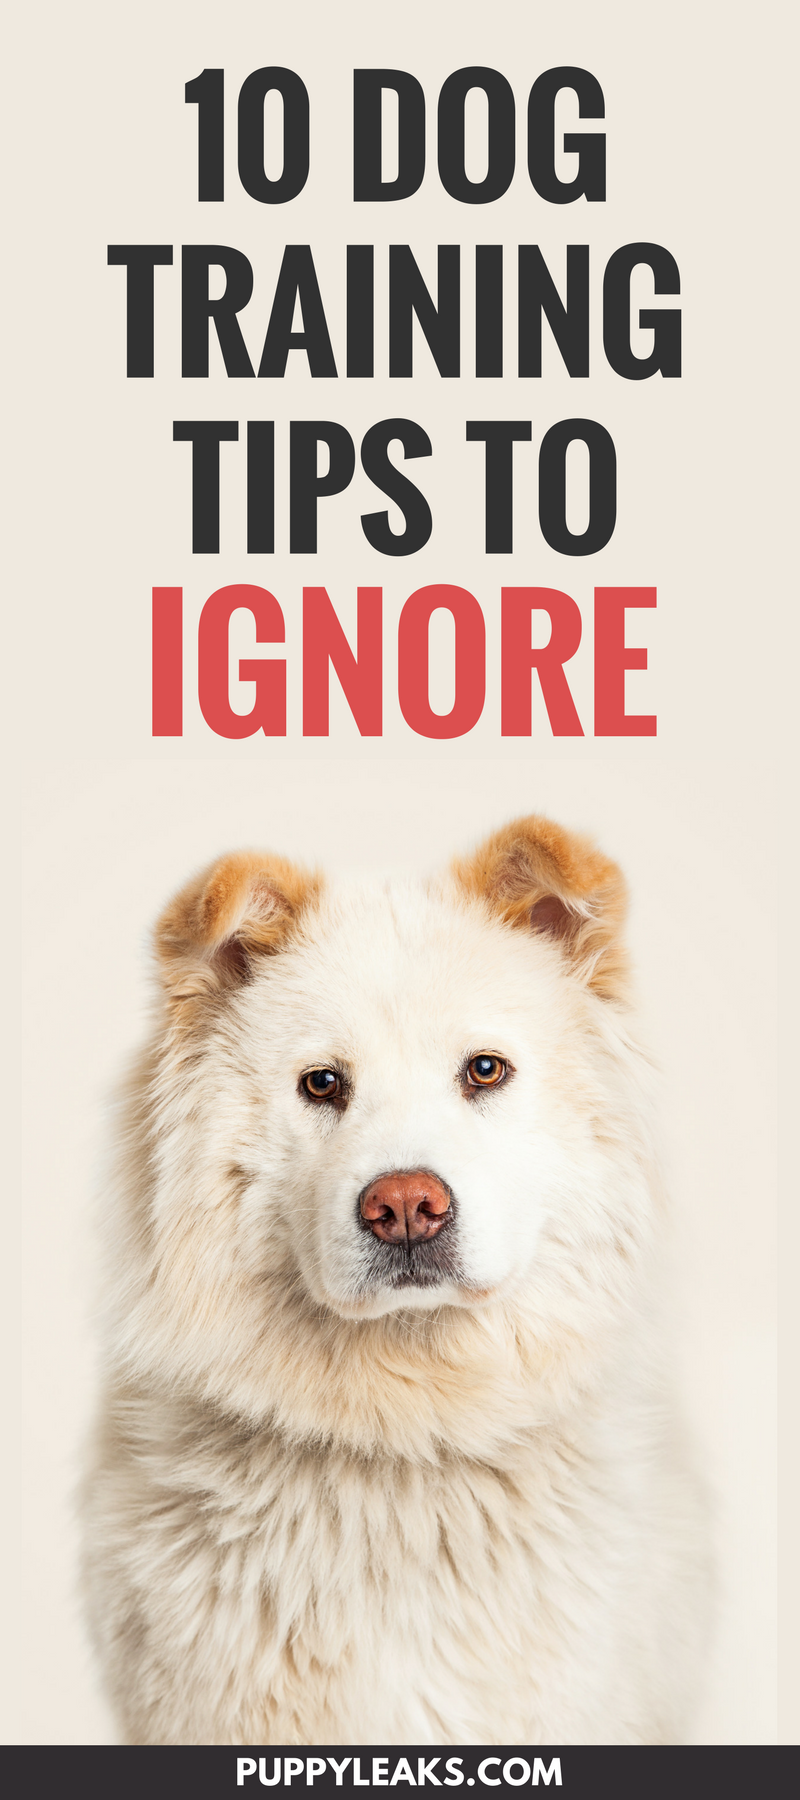 10 Dog Training Tips to Ignore